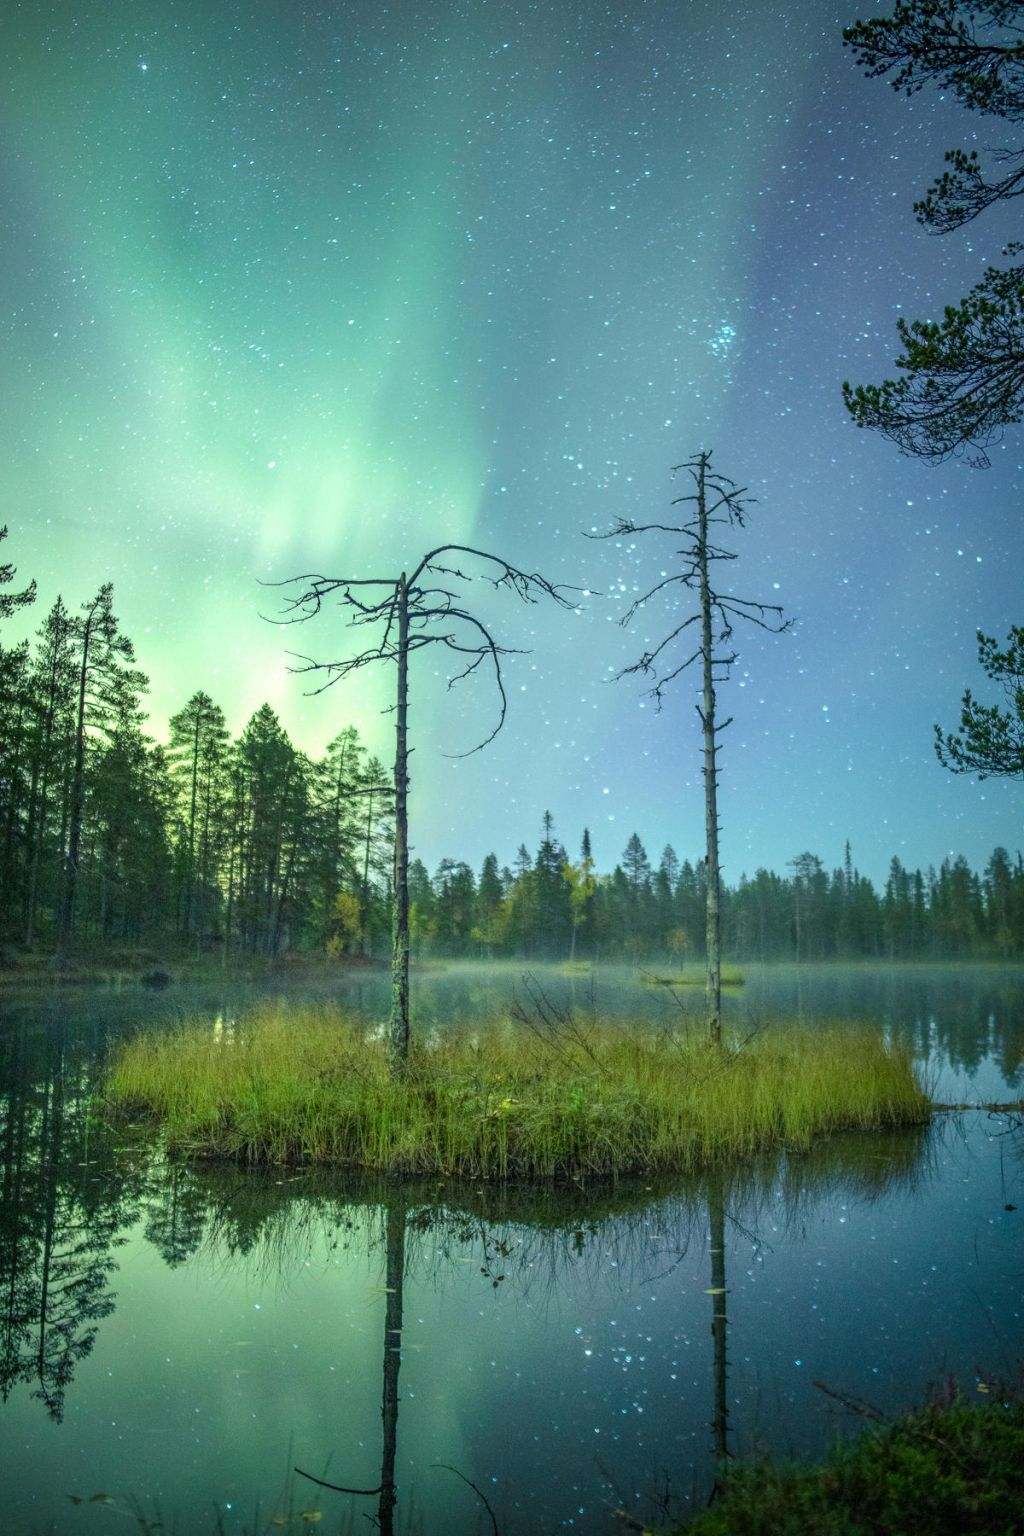 auroras over a lake in Lapland